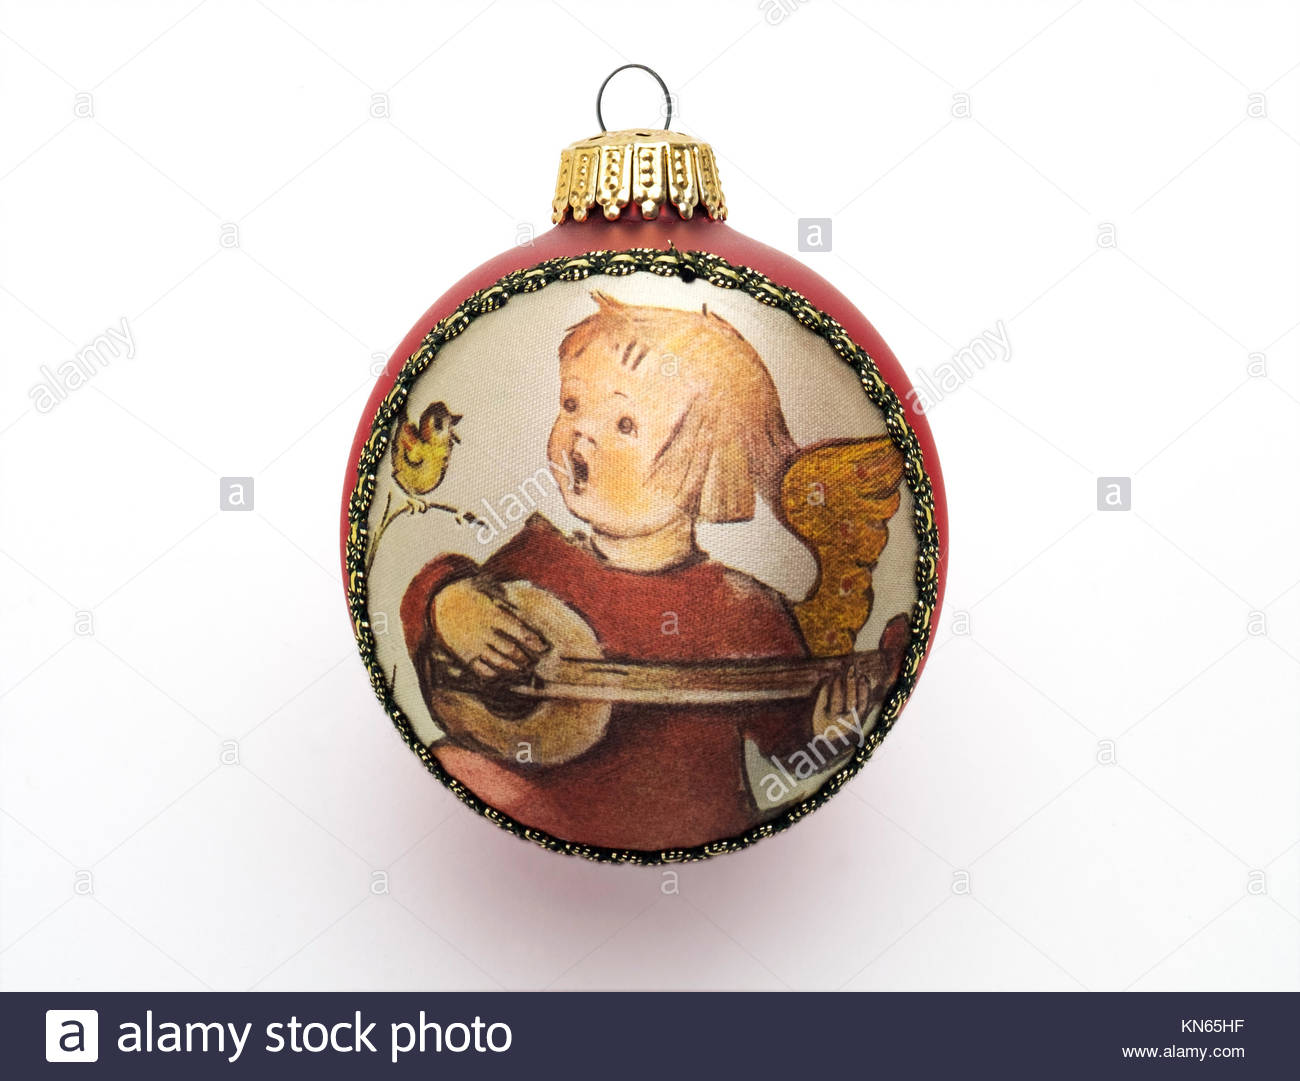 Hummel Christmas Ornaments.Vintage Christmas Tree Ornament With Applied Fabric Image